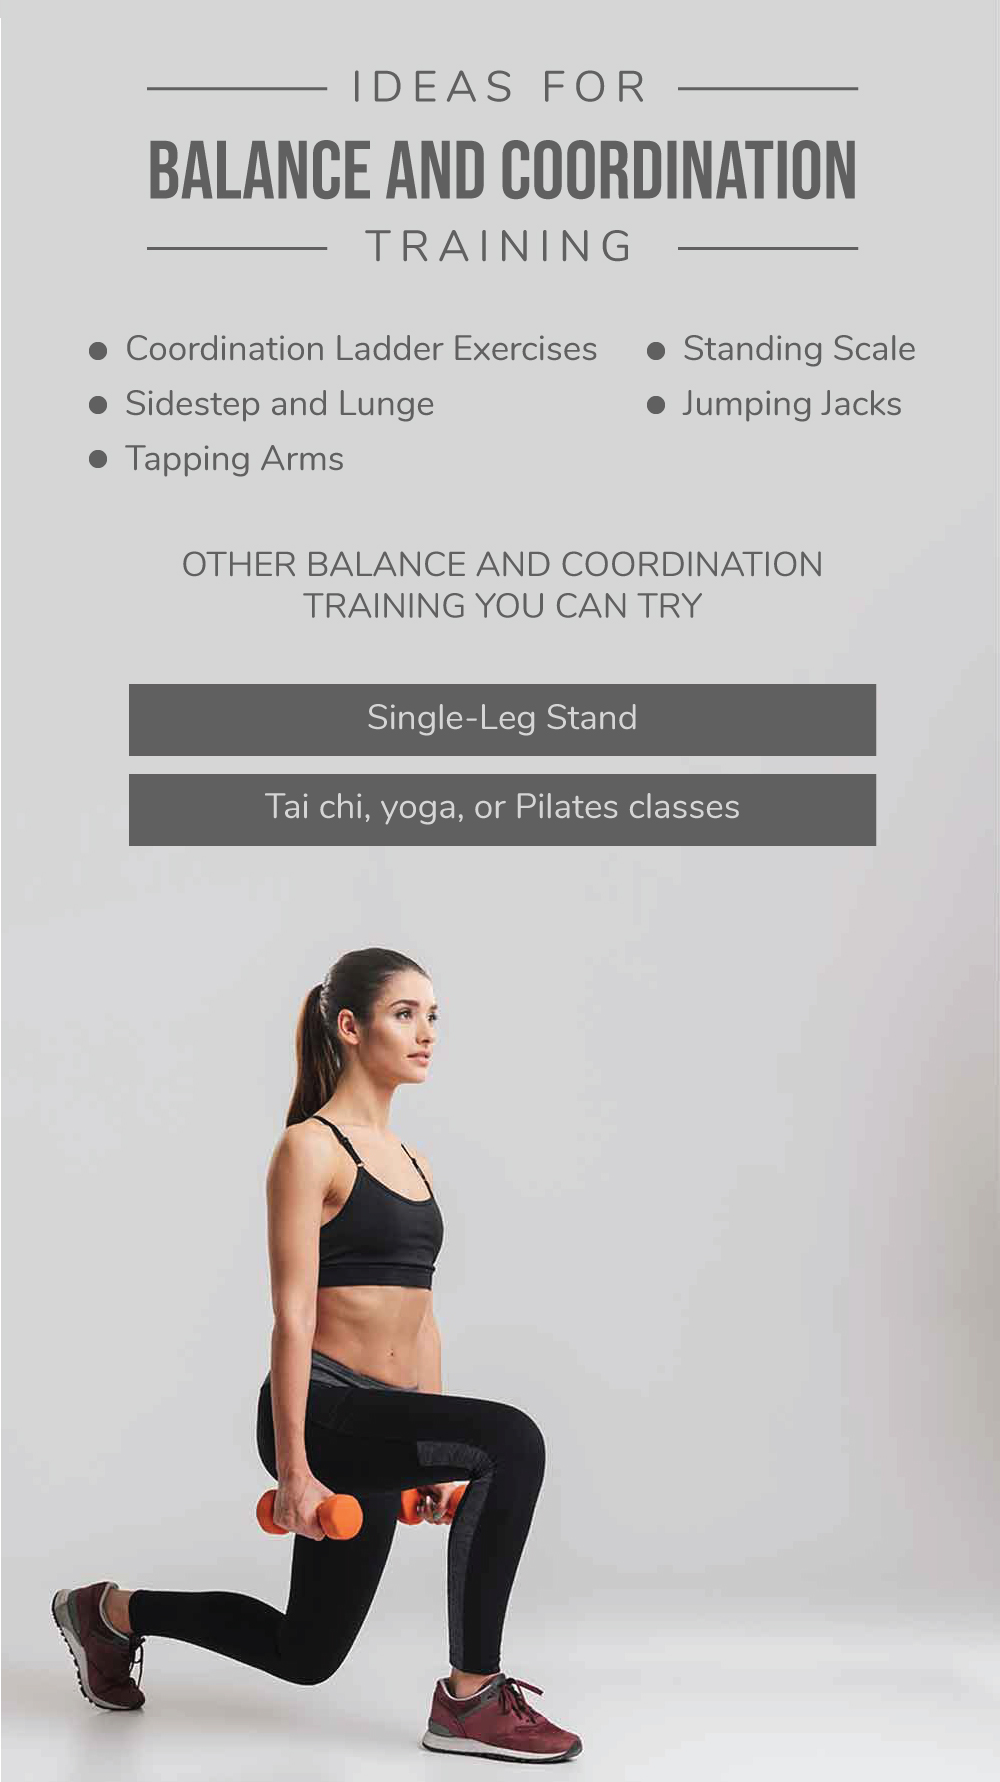 Ideas for Balance and Coordination Training